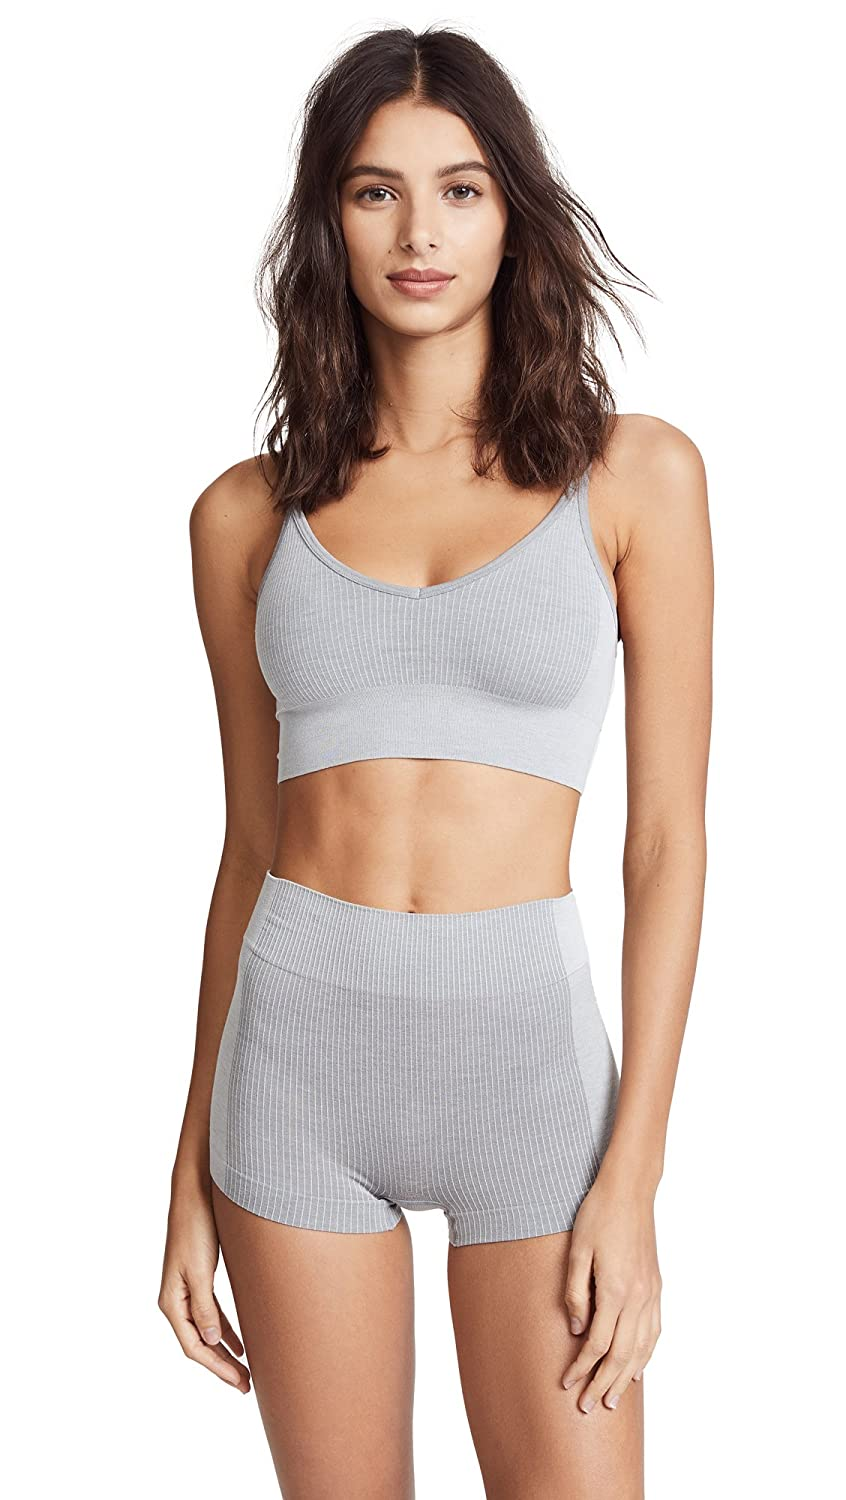 416dc9a5c8c SPANX Women s Laidback Layers Seamless Bralette  Amazon.ca  Clothing    Accessories